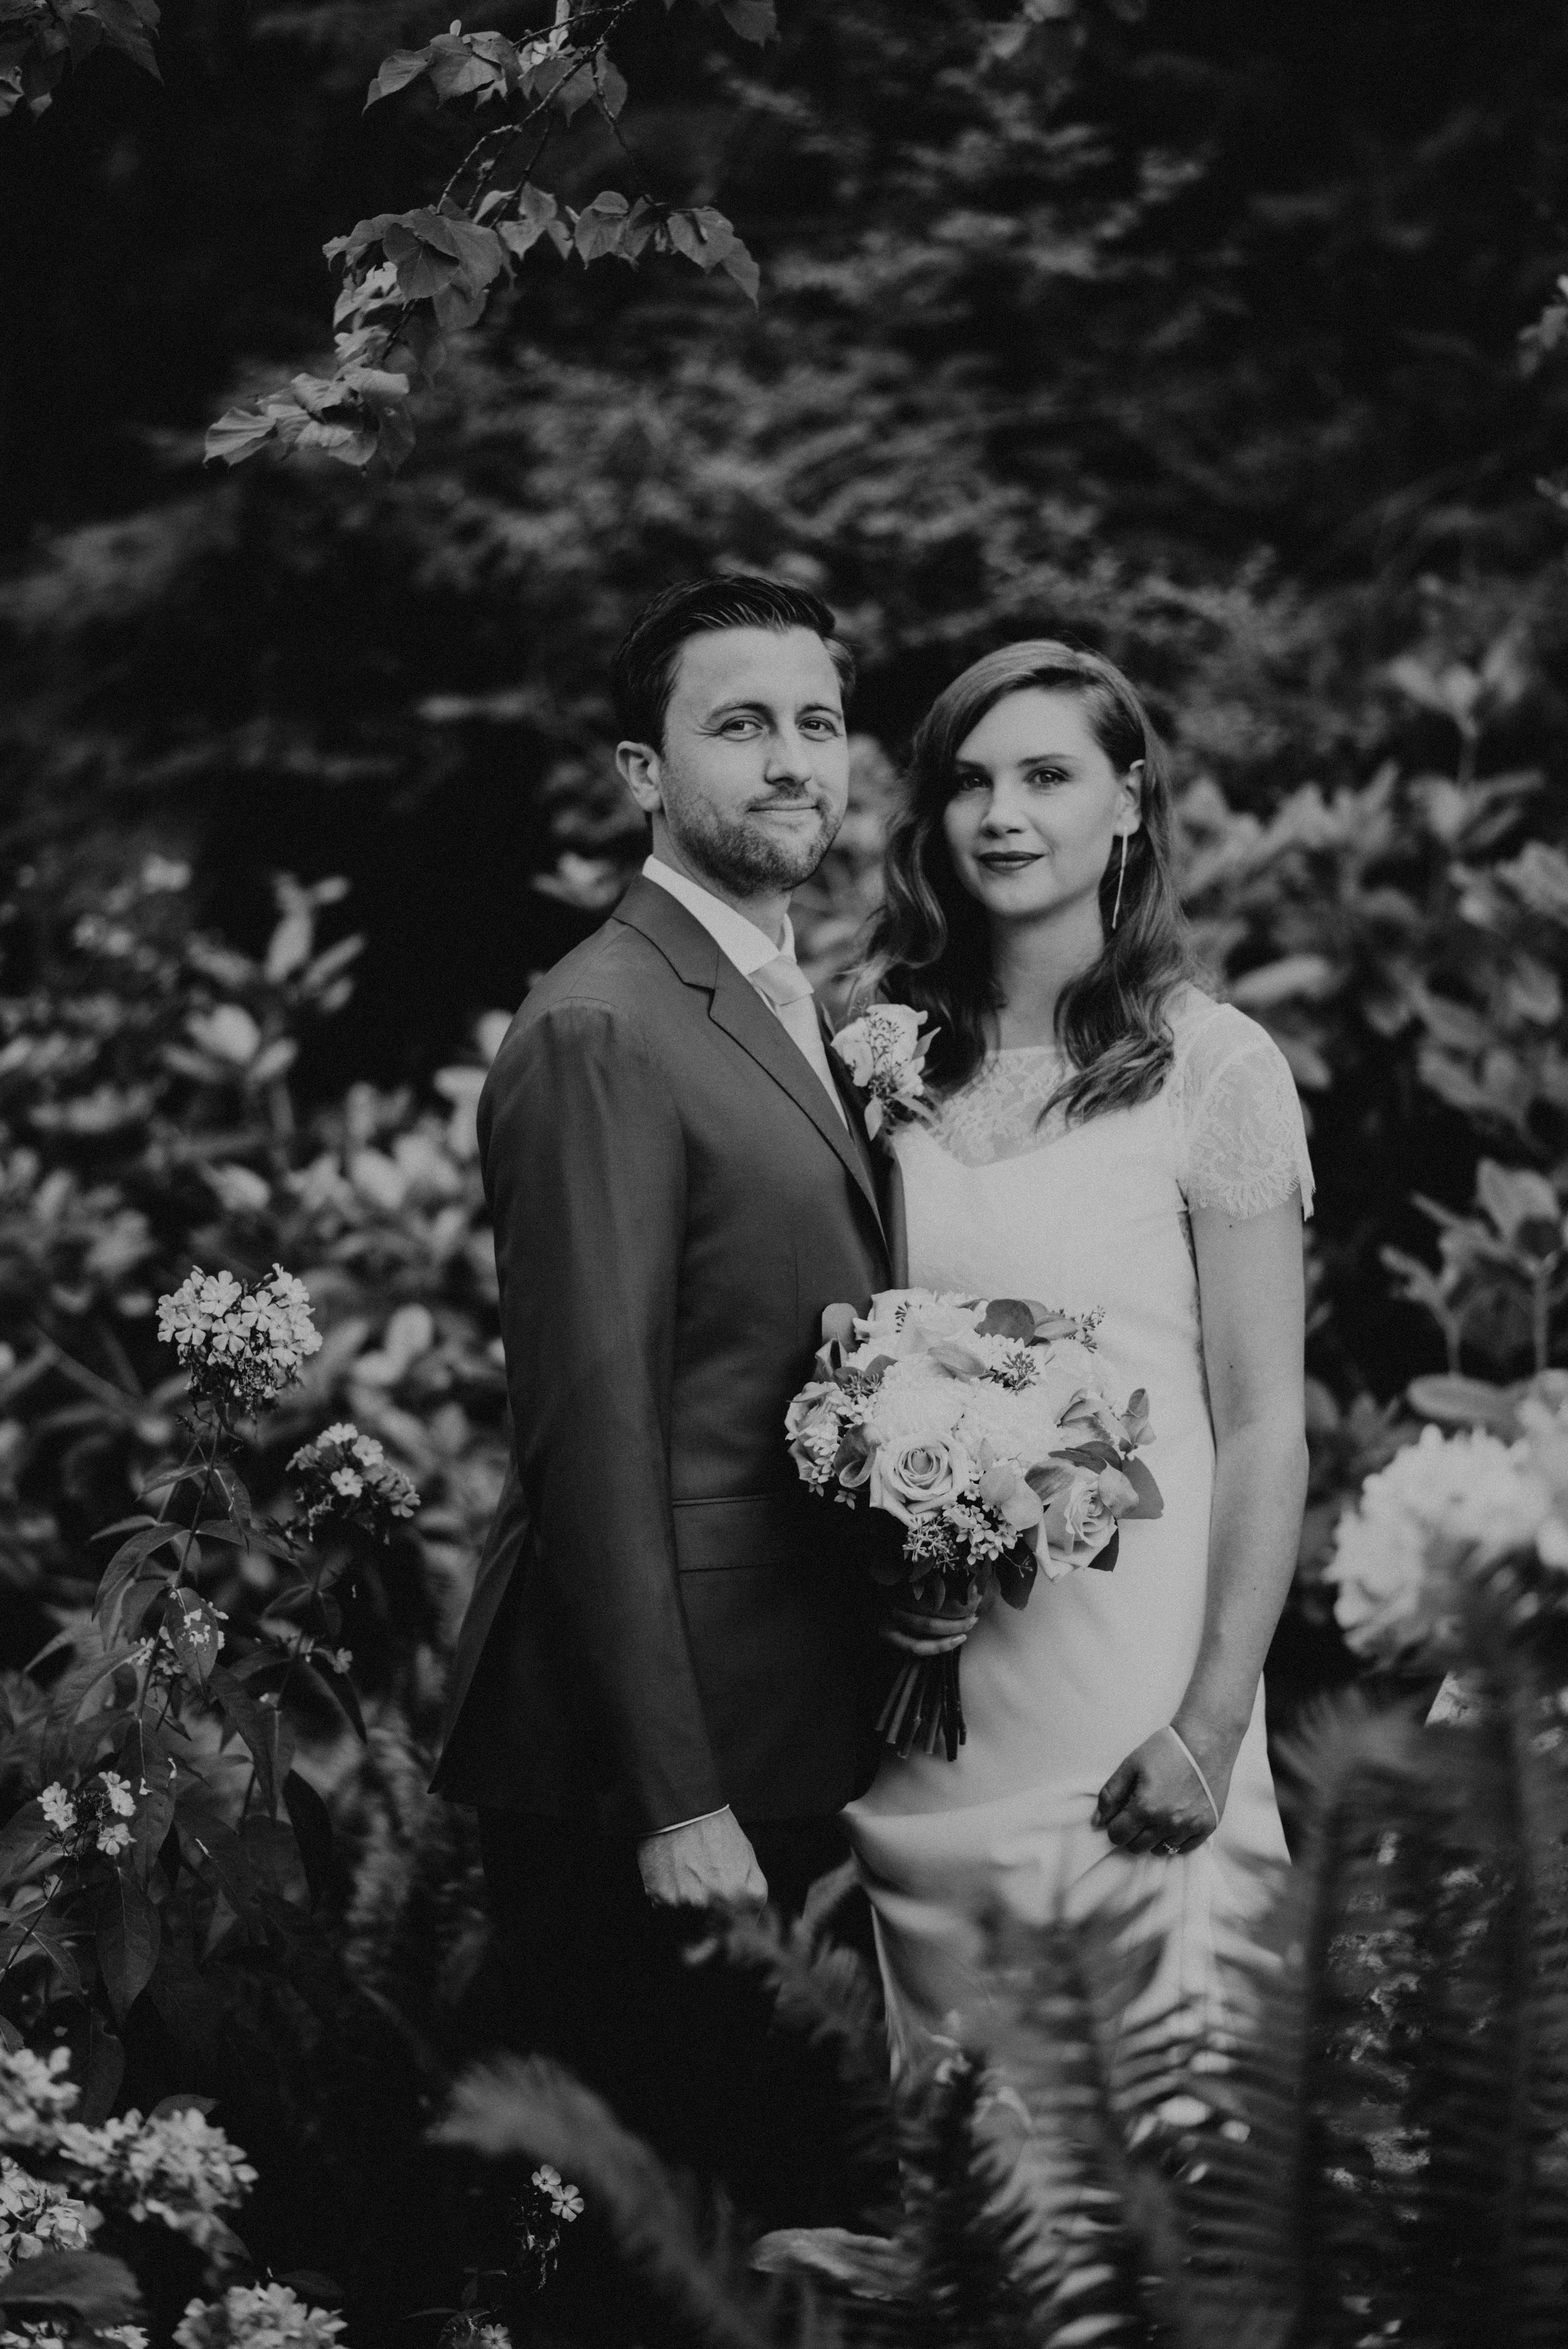 Vincent and Erin-Vincent and Erin-0109.jpg